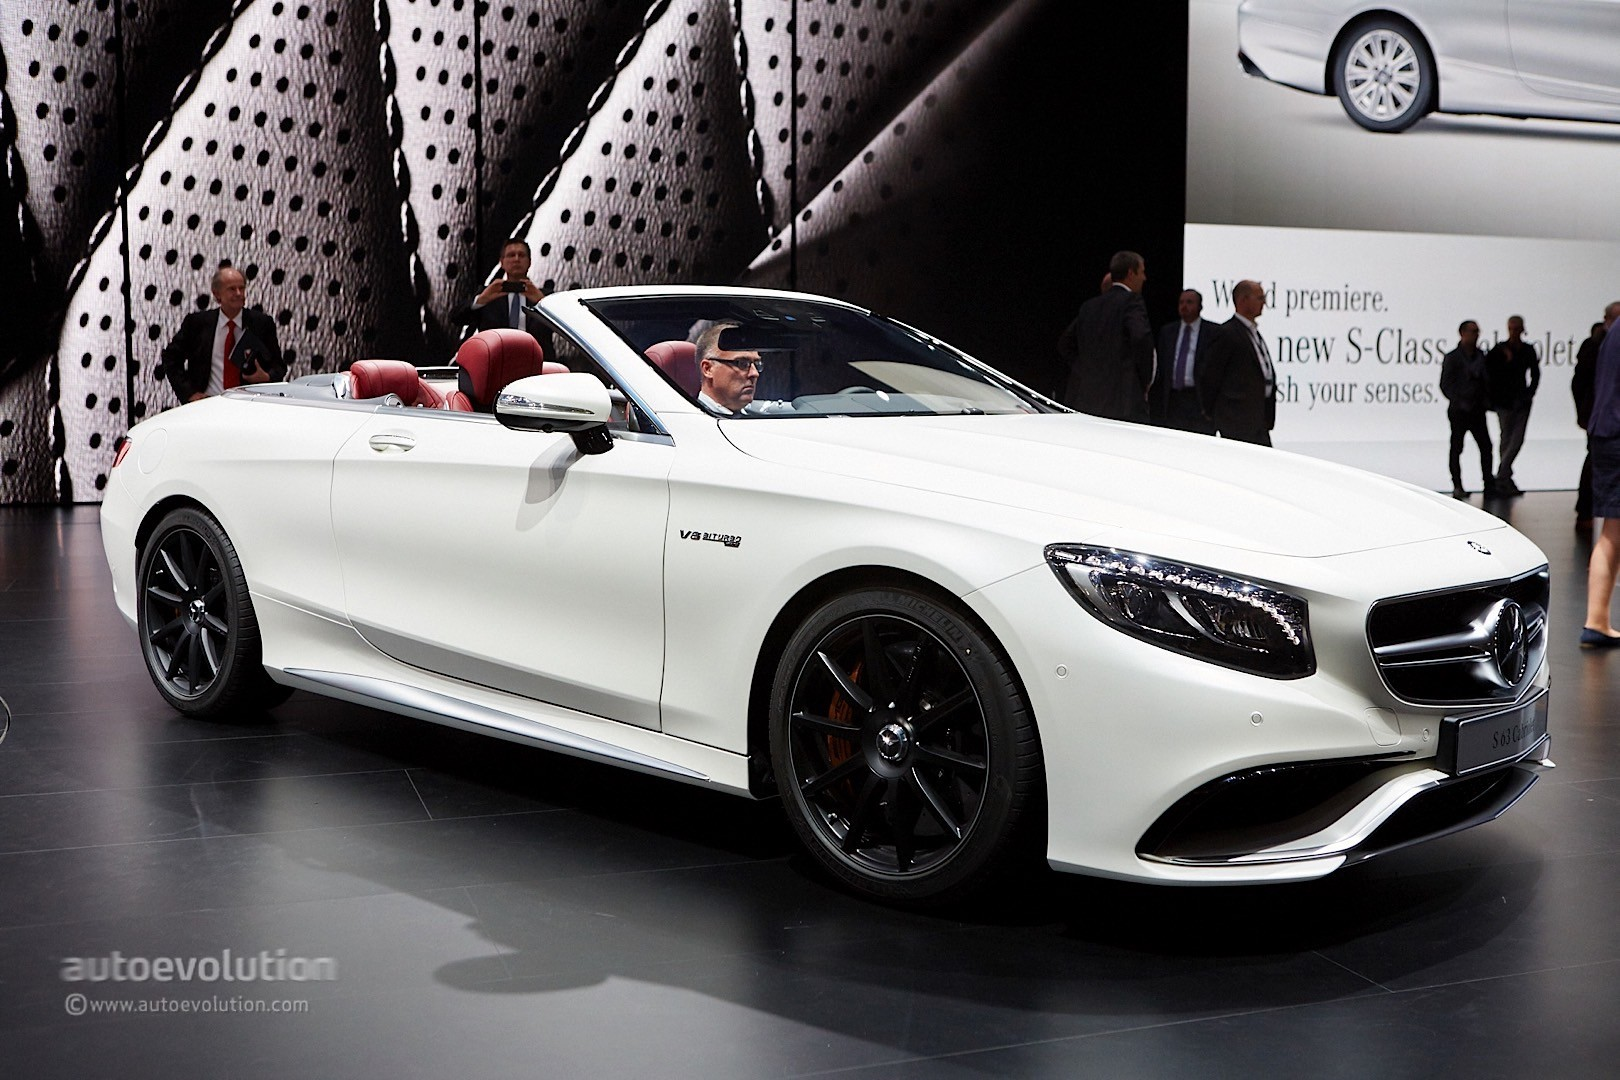 Mercedes Benz S Class Cabriolet And S63 Cabriolet Are The